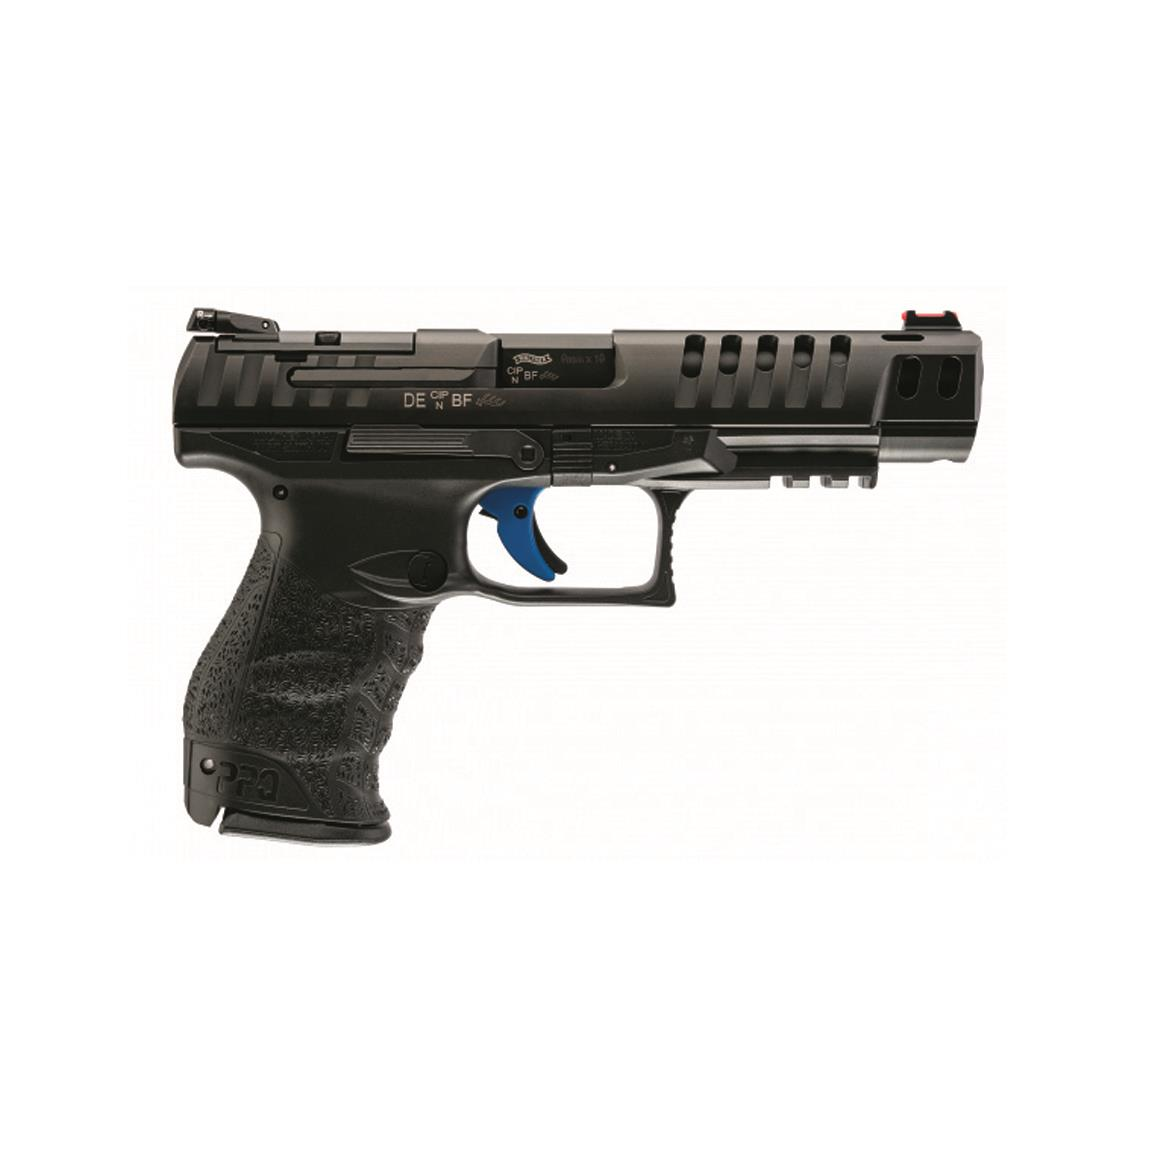 "Walther PPQ Q5 Match, Semi-Automatic, 9mm, 5"" Barrel, 10+1 Rounds"